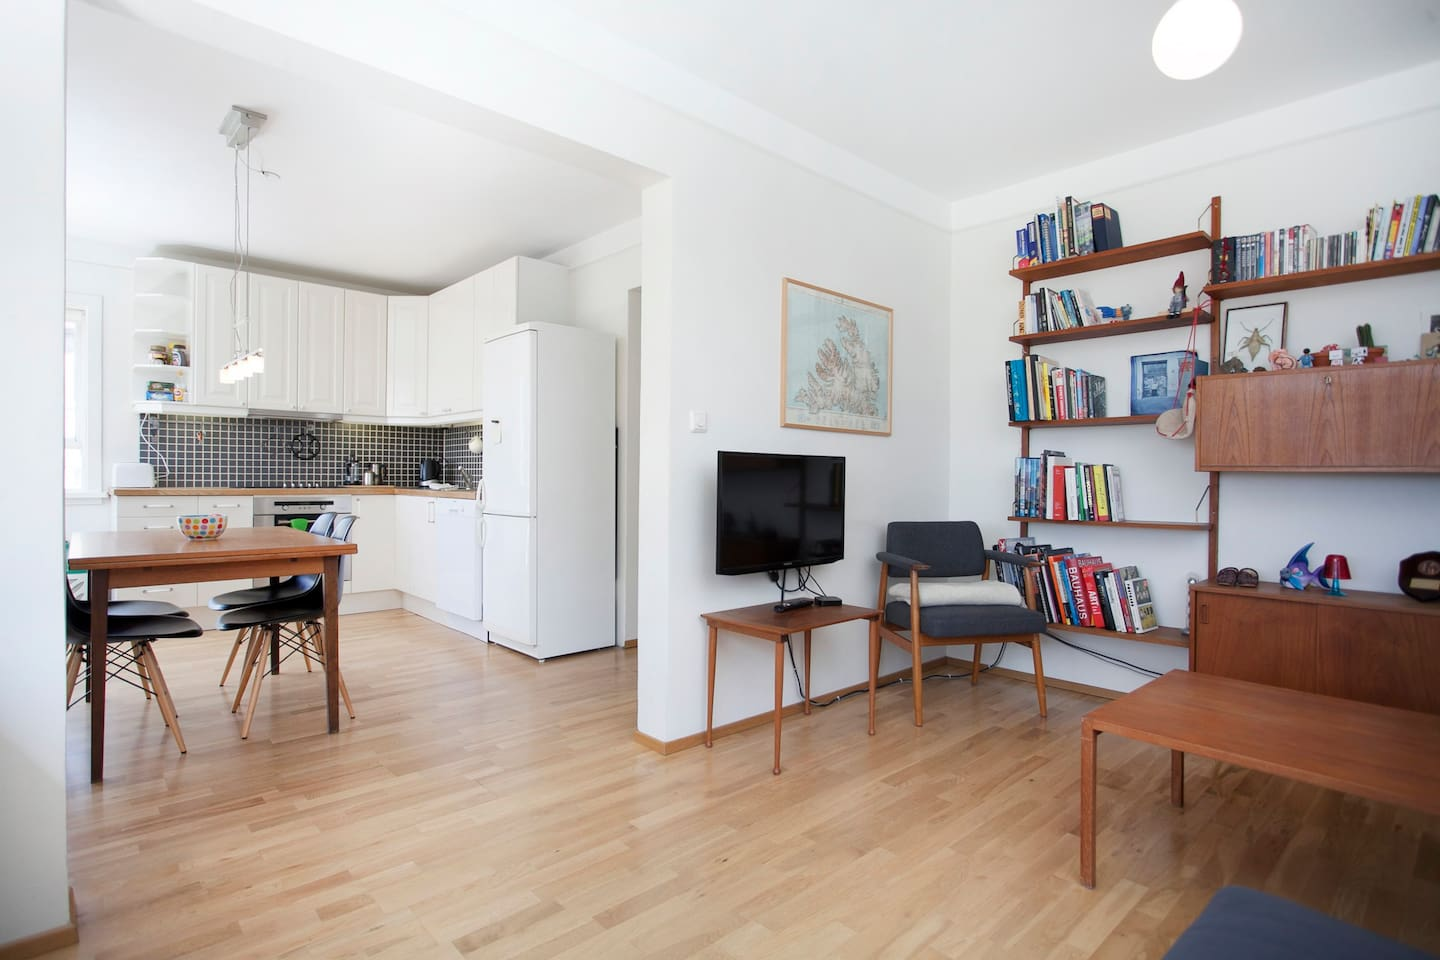 The living room is connected to the kitchen /dining room